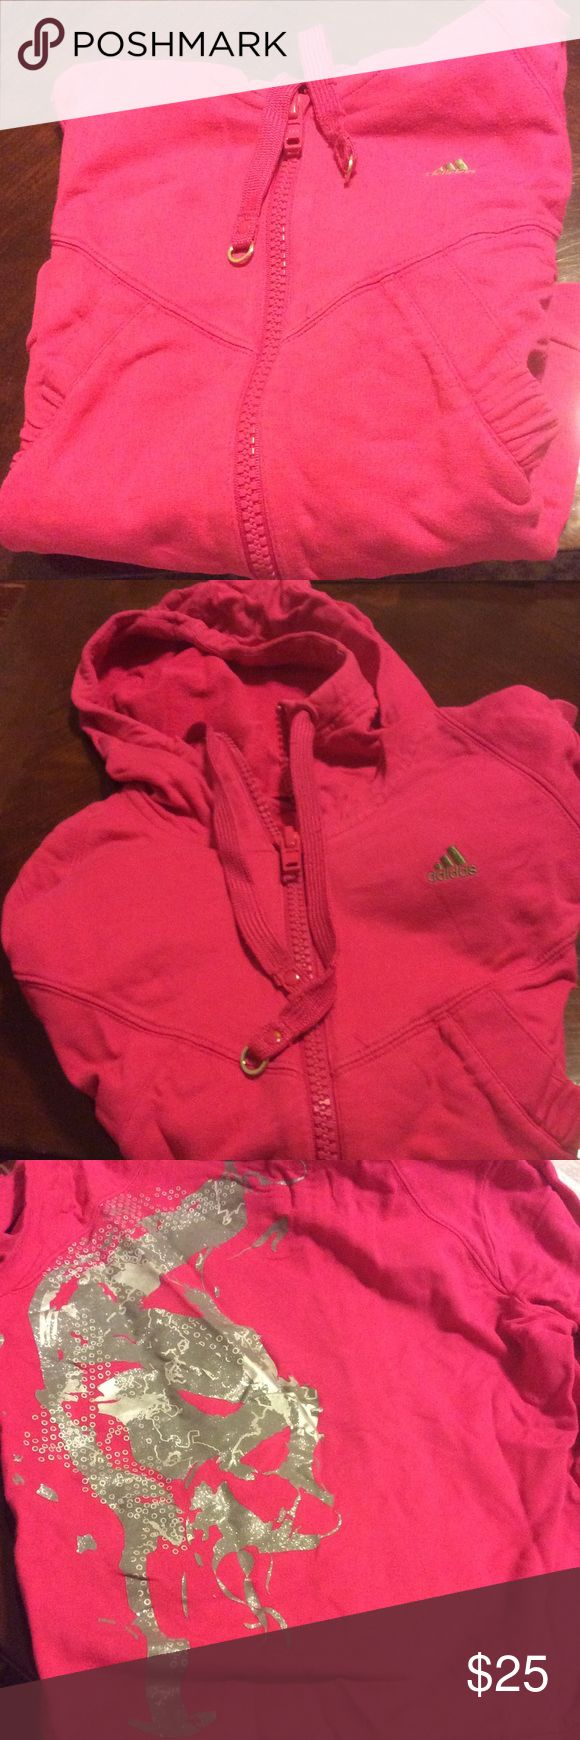 Adidas neon pink zip-up hoodie Neon pink Adidas zip-up hoodie. Size says Large because it is in Asian size, but is equivalent to a US women's medium Adidas Tops Sweatshirts & Hoodies